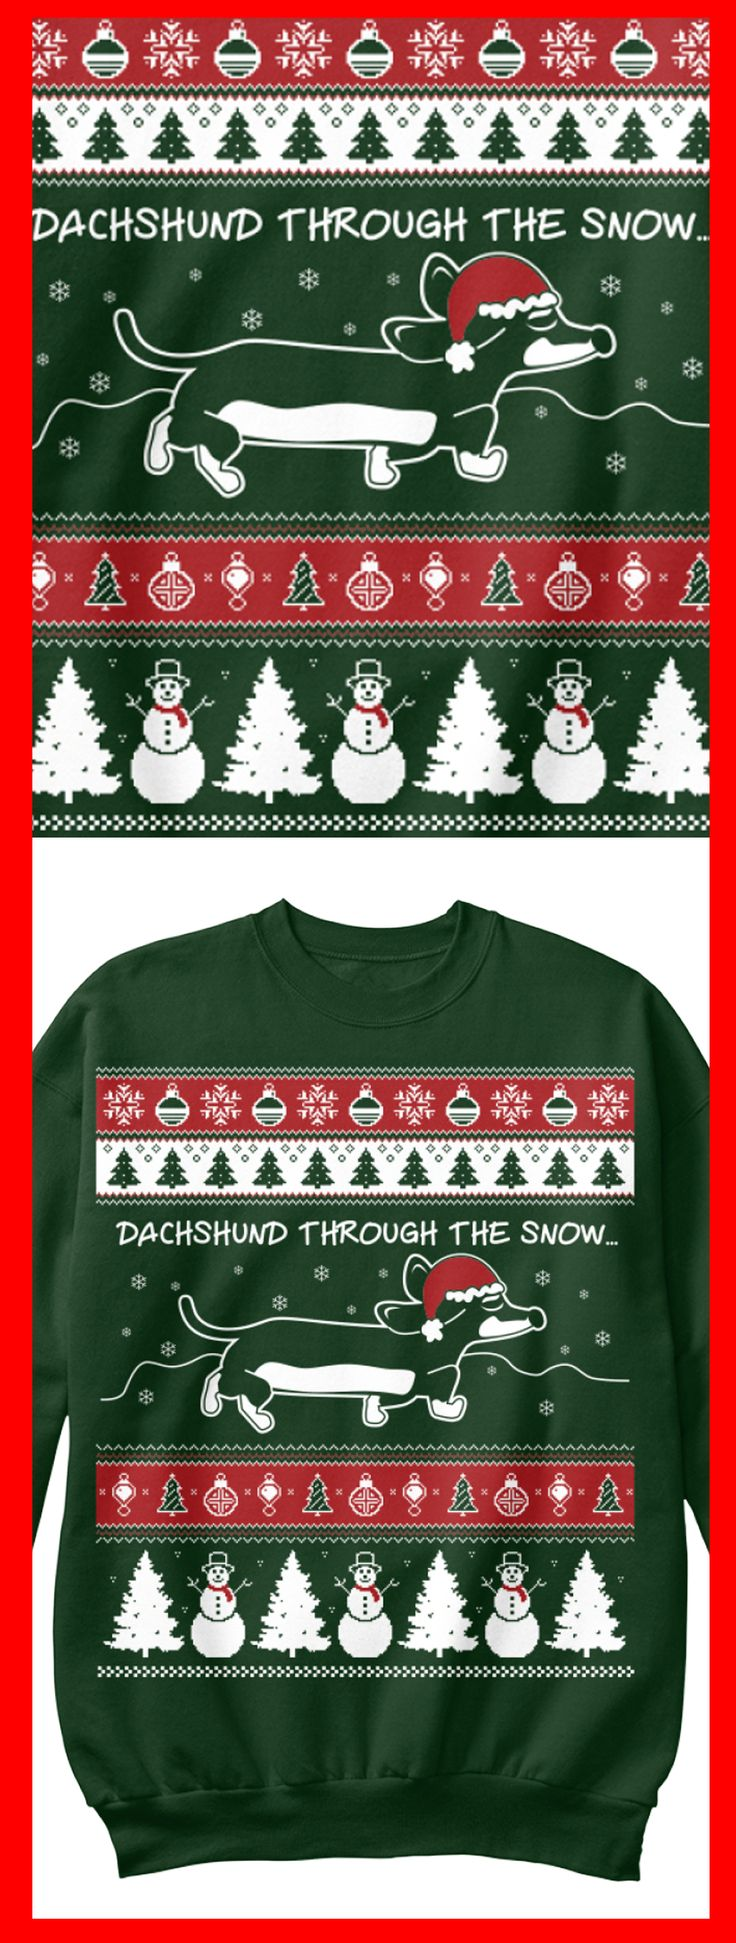 """Dachshund Through The Snow"" Christmas Sweatshirt available now.  Click image to get a better view of the sweater.  Printed on a real sweatshirt not a cheap long sleeved shirt this will bring joy to any Dachshund owner."